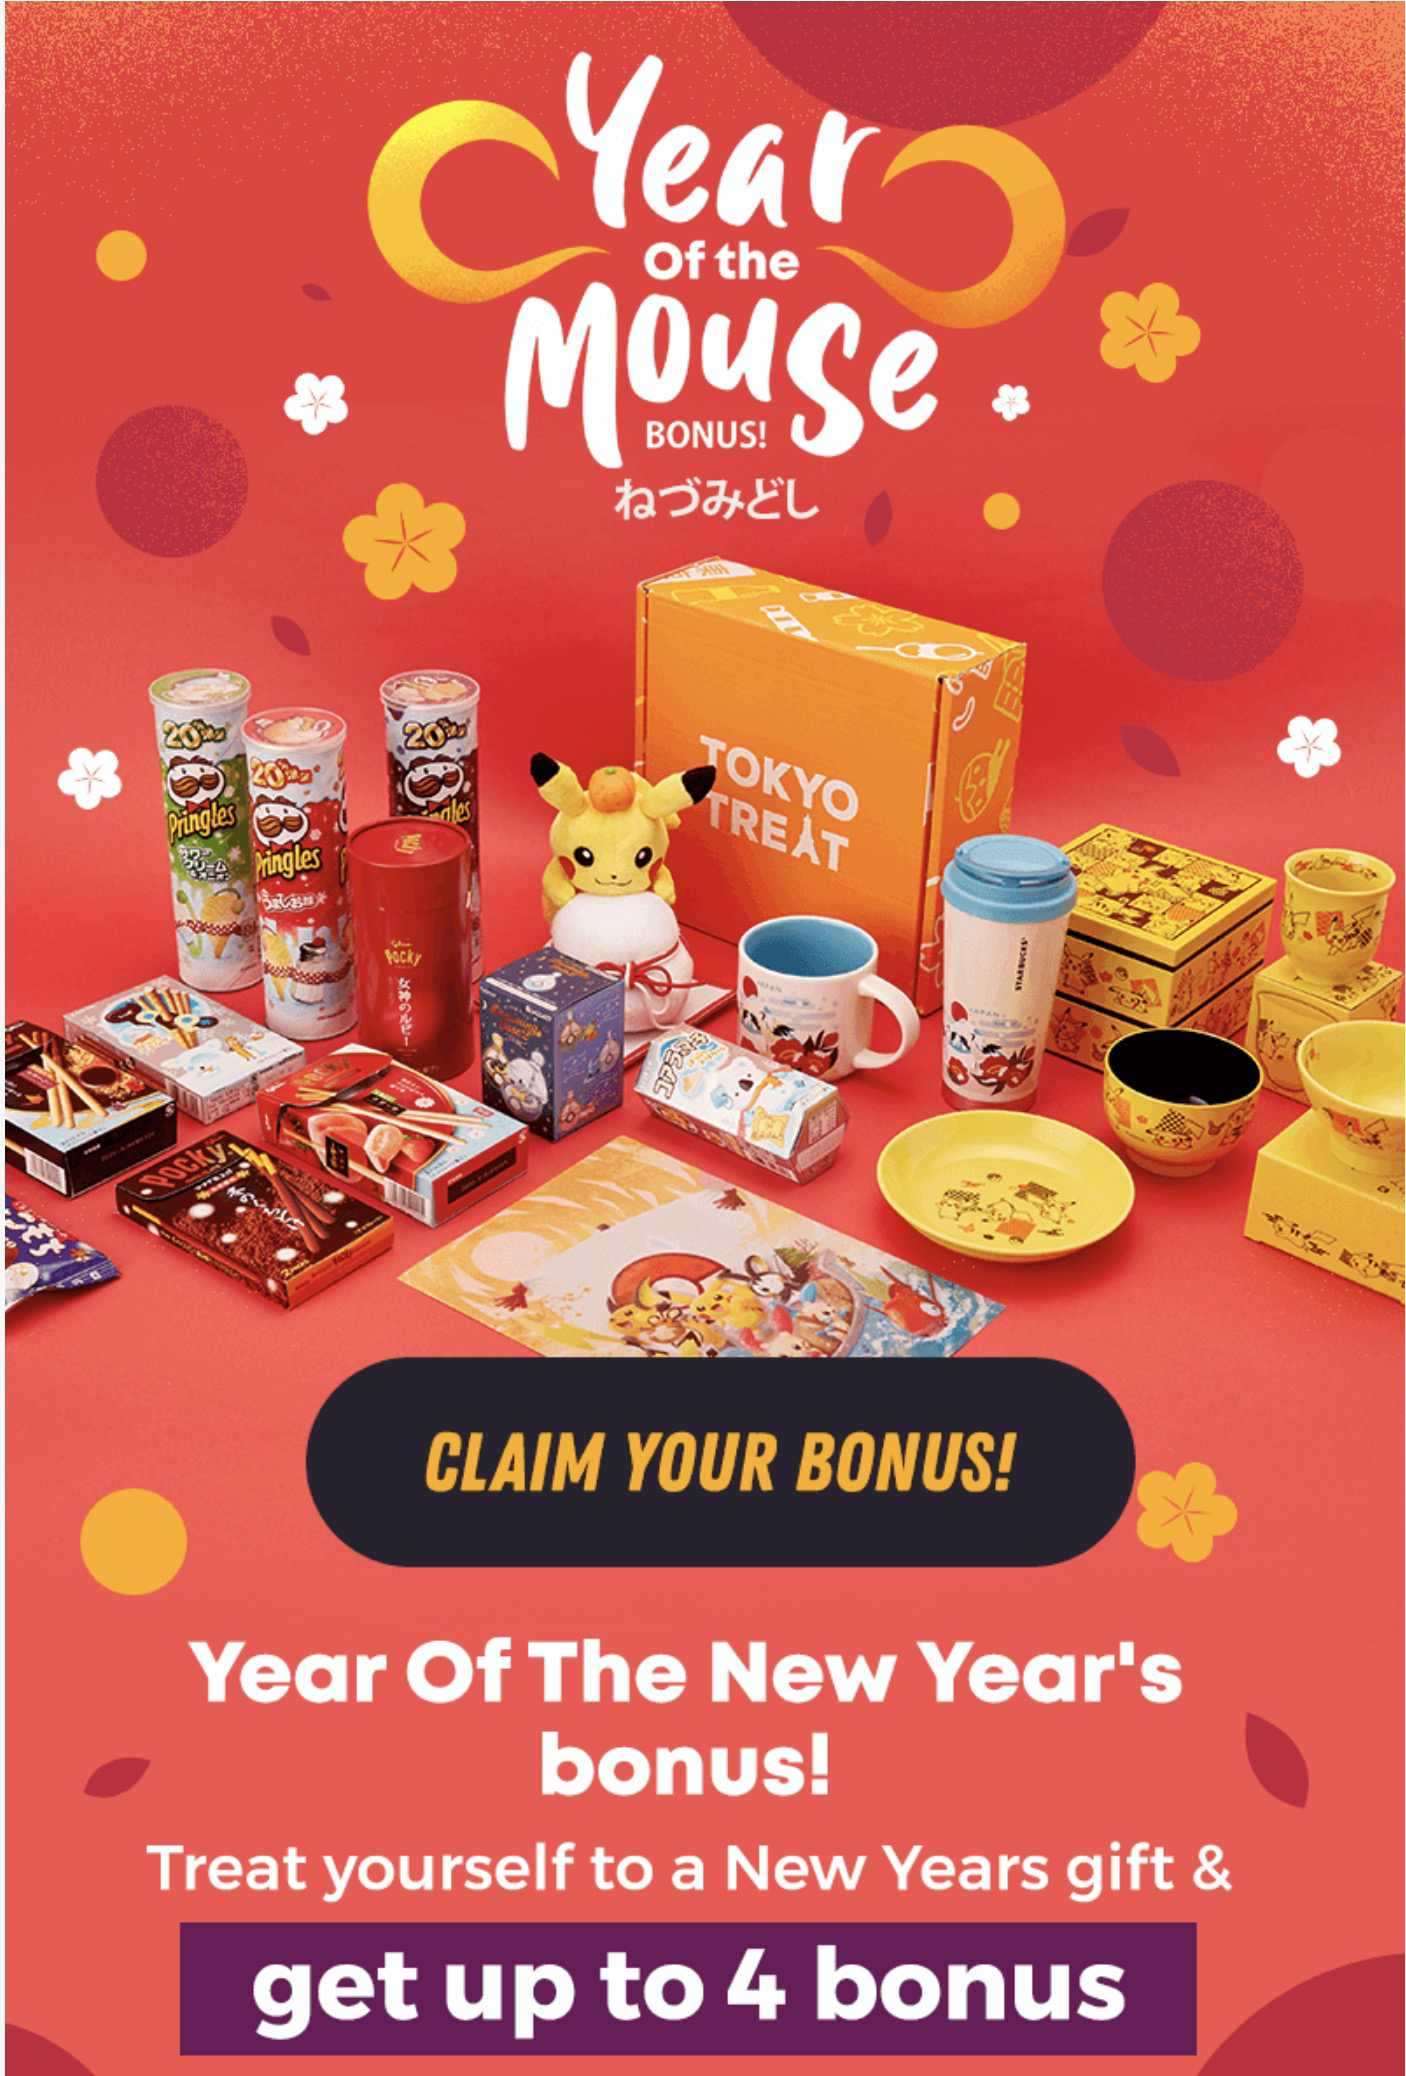 Tokyo Treat Cyber Monday 2019 Coupon Free Bonus Items Hello Subscription In 2020 Tokyo Treat Japanese Candy Diy Cyber Monday